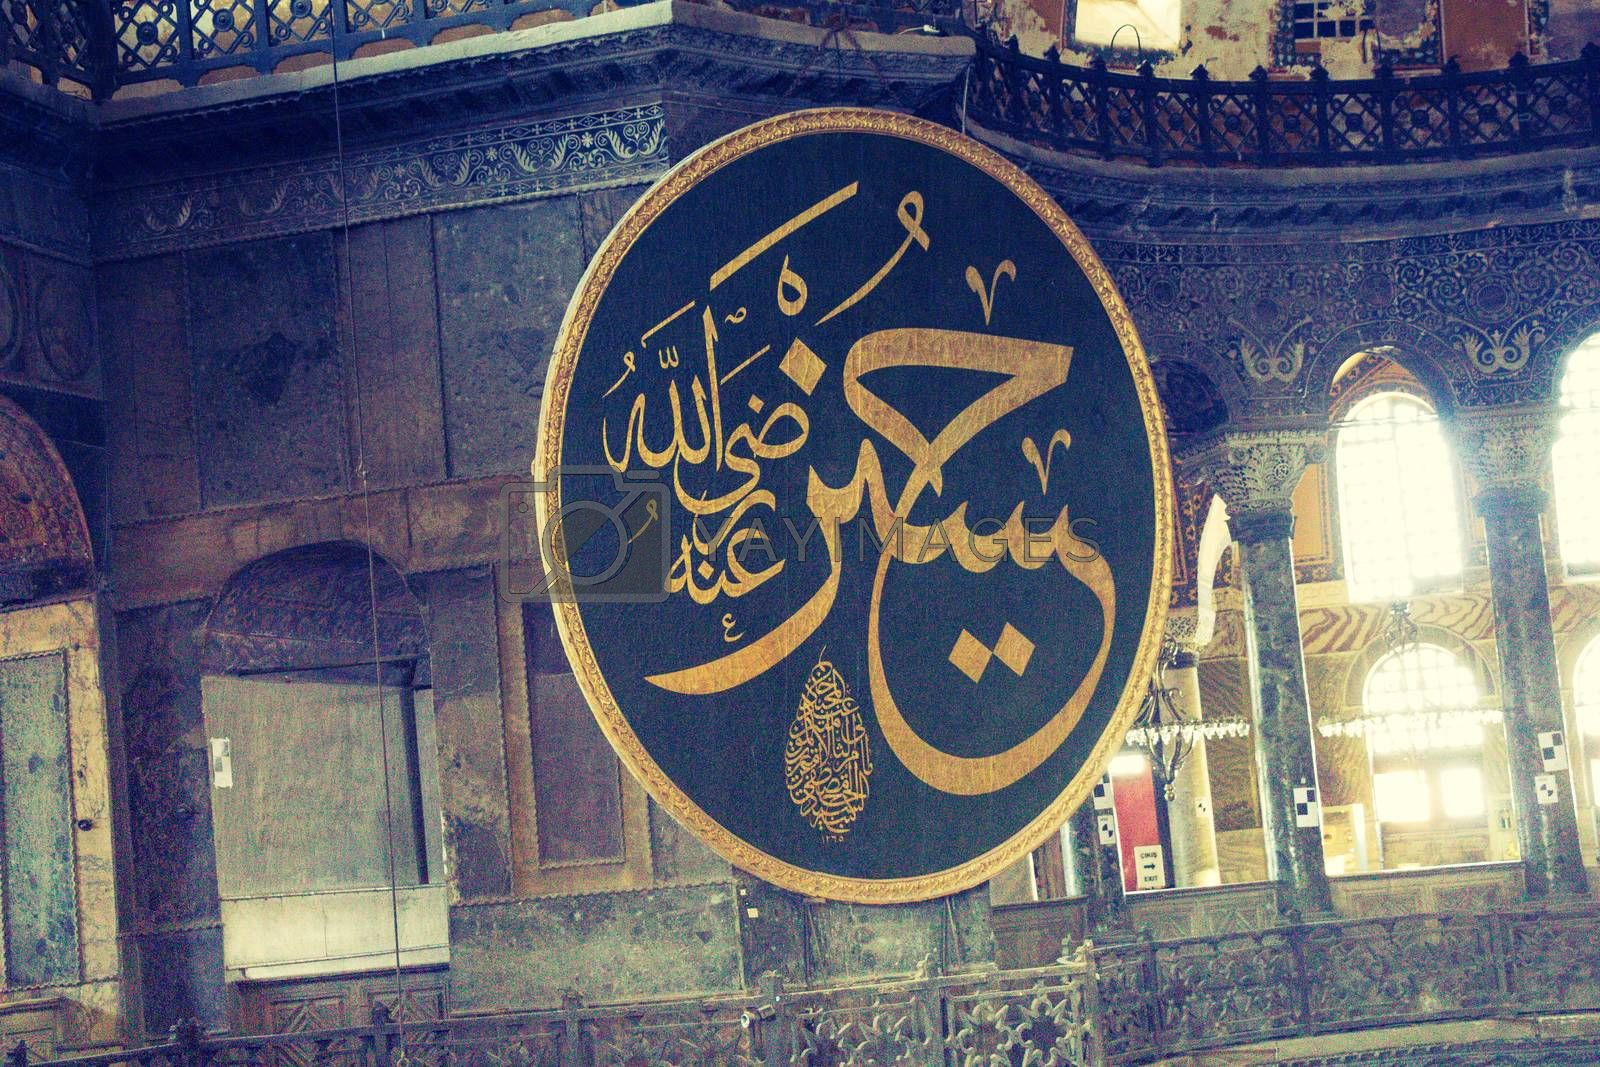 Beautiful examples of the Ottoman Calligraphy art